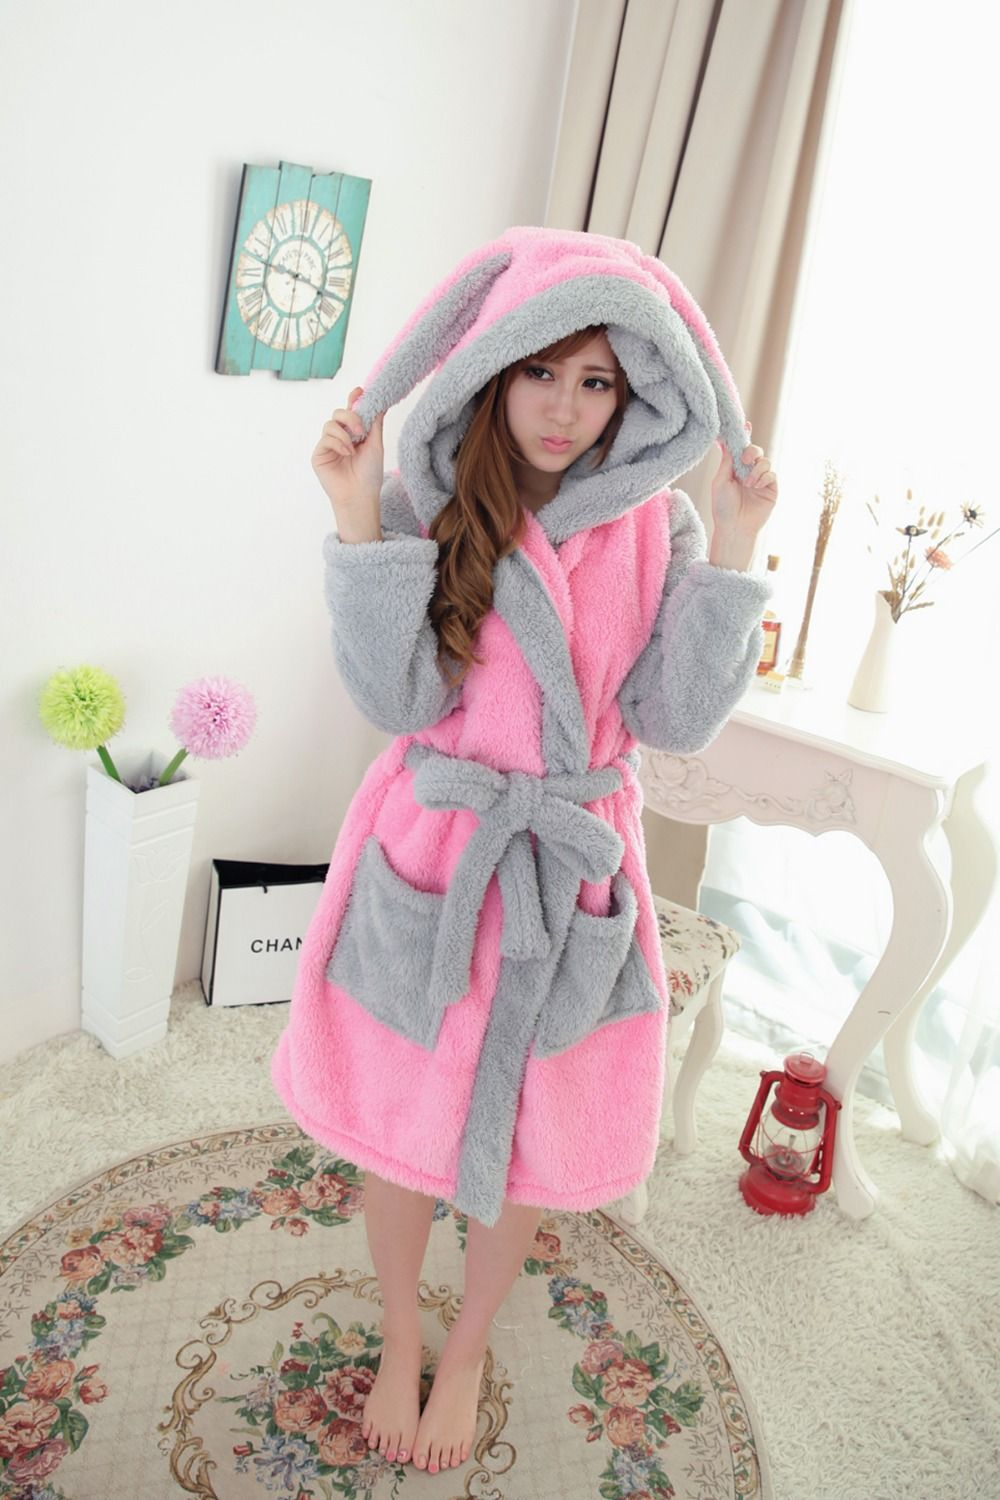 New plush robe 2015 Adult Animal Pink Rabbit Pajamas long sleeve lovely Sleepwear  bath robes dressing gowns for women bathrobe a94b07535